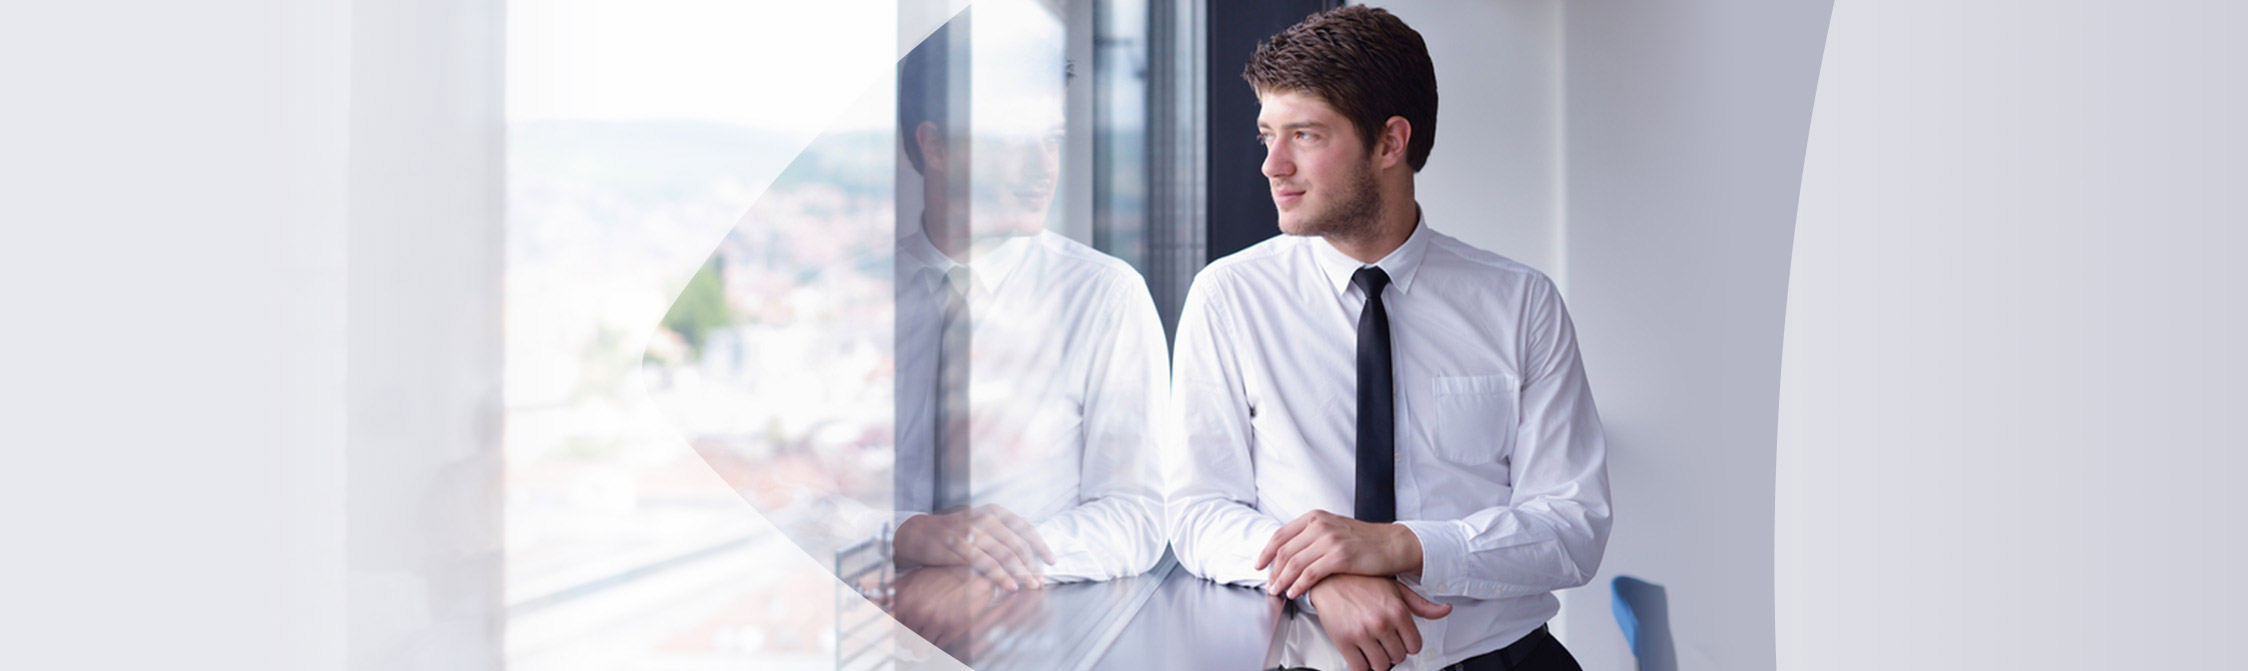 Man in office staring out window